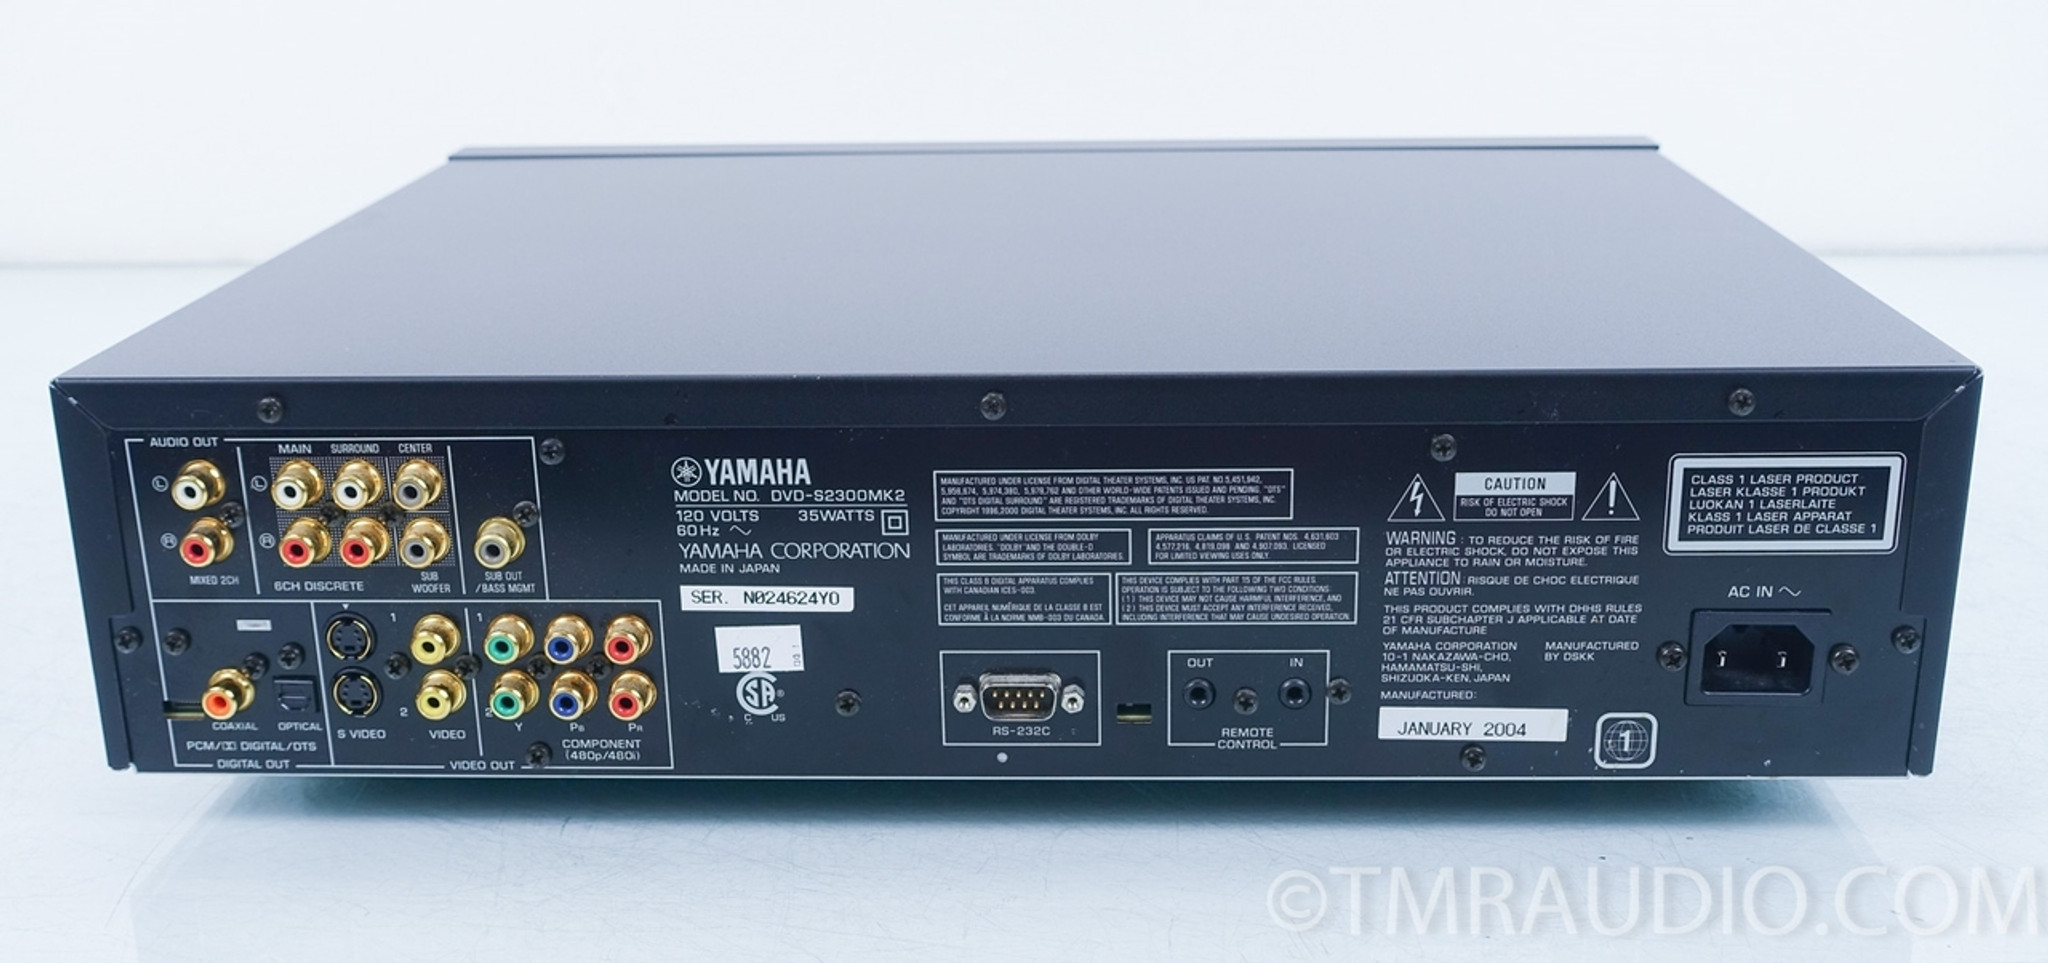 21558b37c Yamaha DVD-S2300 MK2 CD / DVD / SACD Player - The Music Room